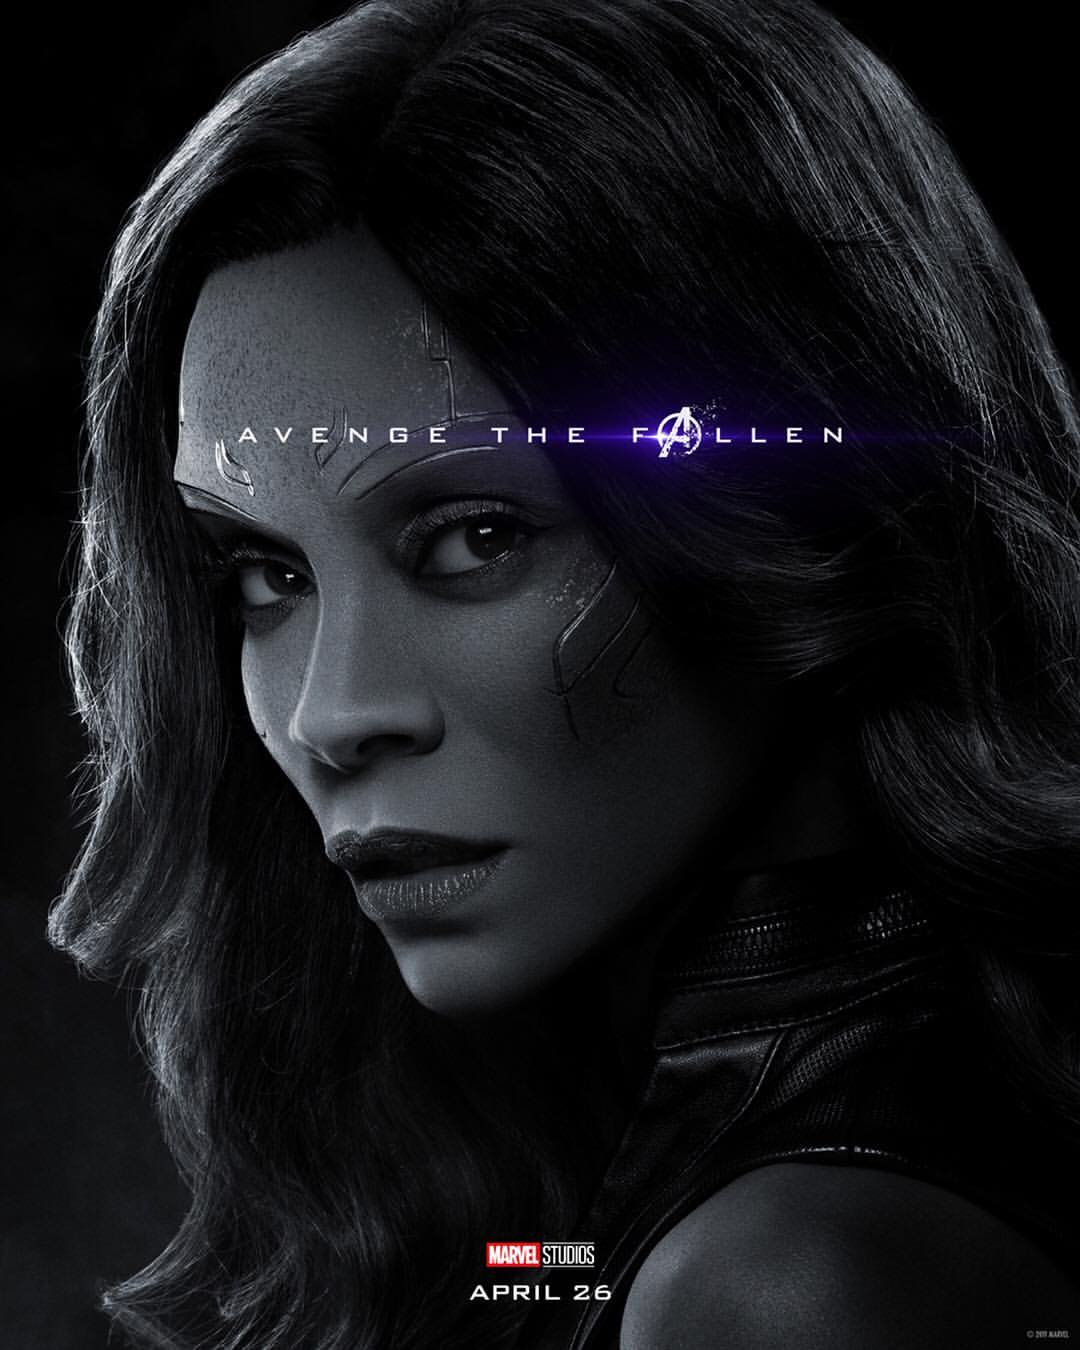 'Avengers: Endgame' crushes first day presales record in 6 hours